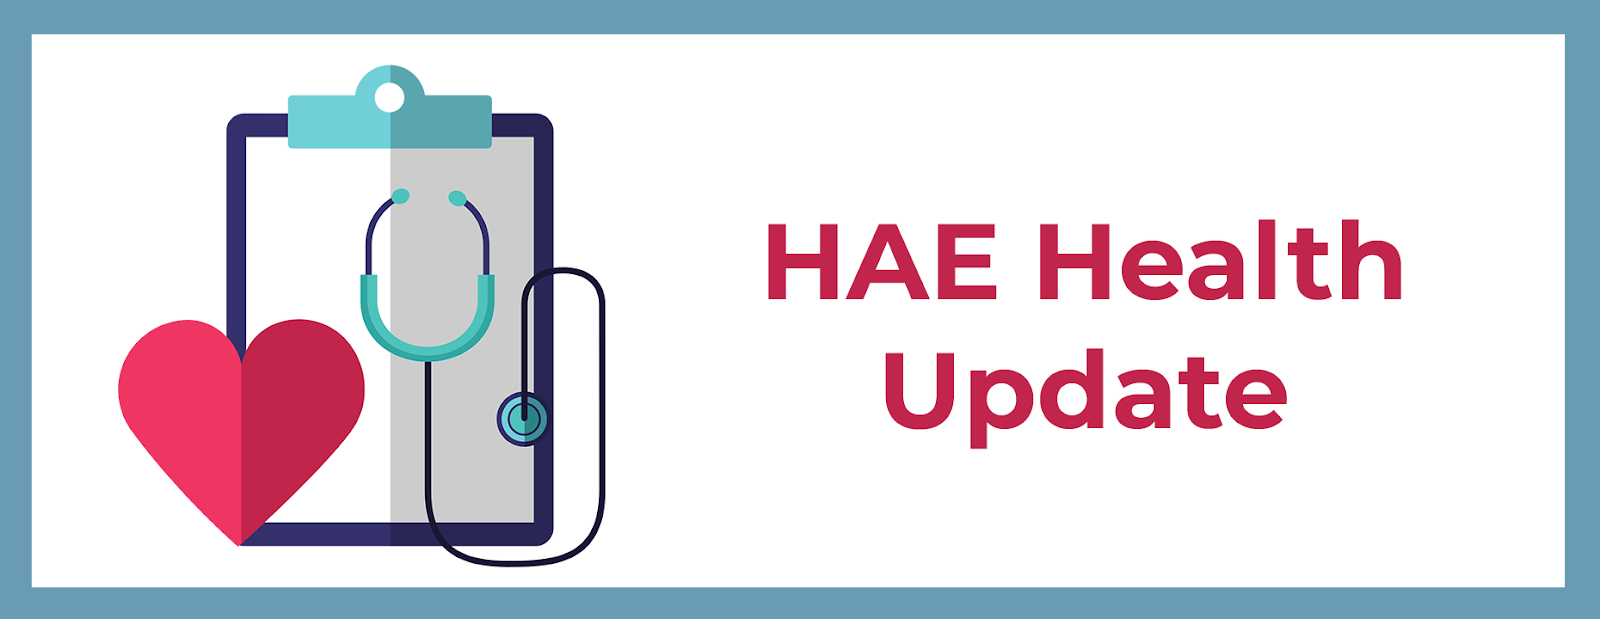 HAE Health Update